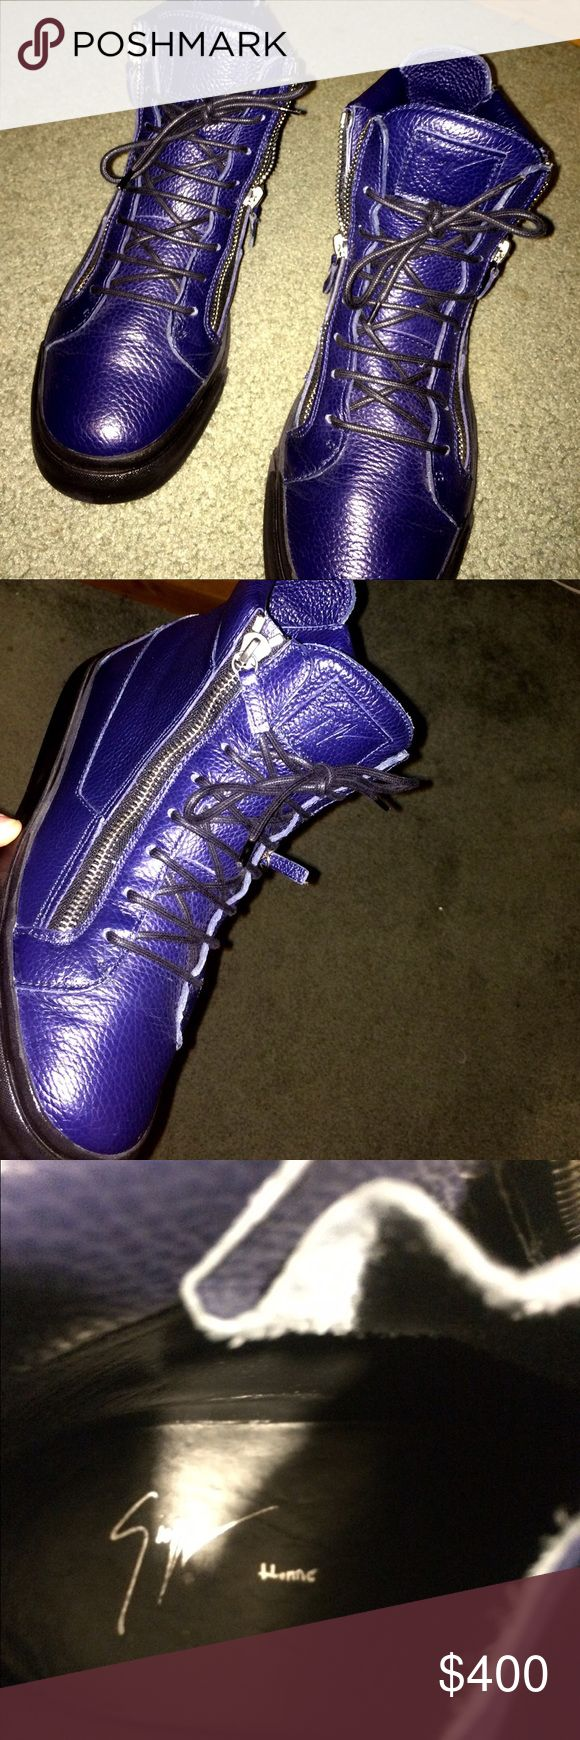 giuseppe's sneakers size 42 size 42 only wore twice..looking for 400$ or a  good trade don't matter! Giuseppe Zanotti Shoes Sneakers